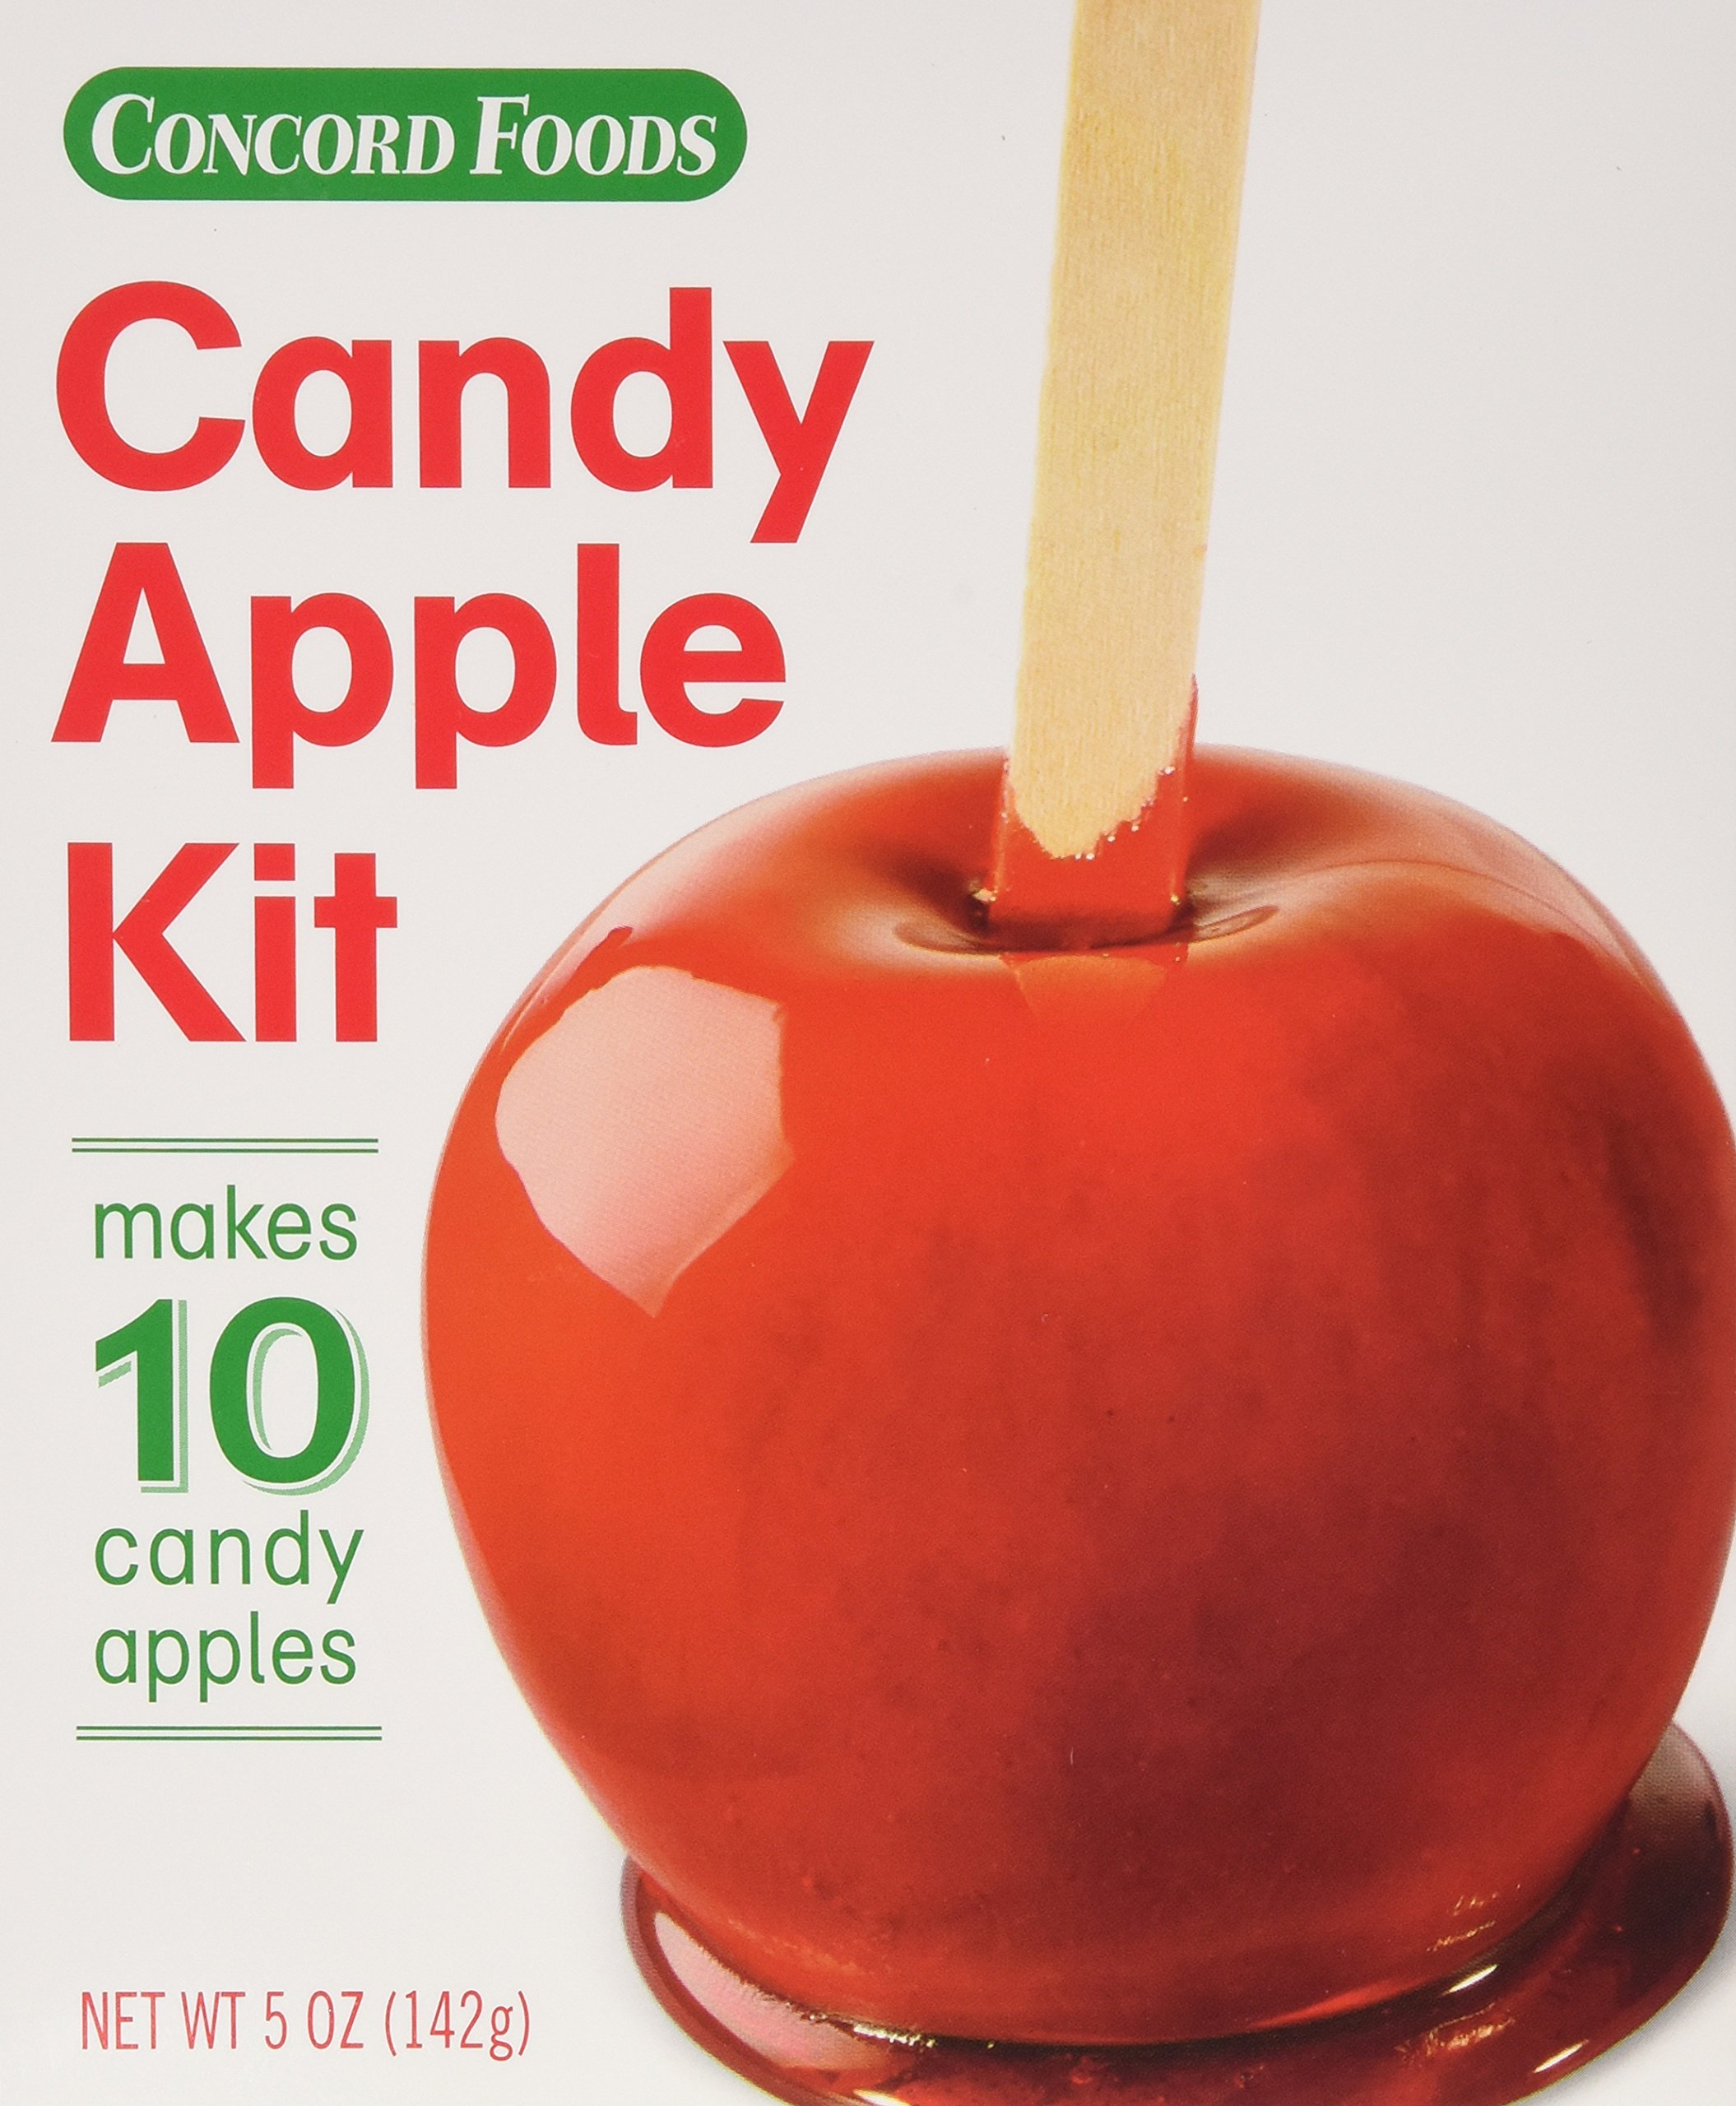 CDM product Concord Foods Candy Apple Red Kits, 5-Ounce Box (VALUE Pack of 24 Boxes) big image